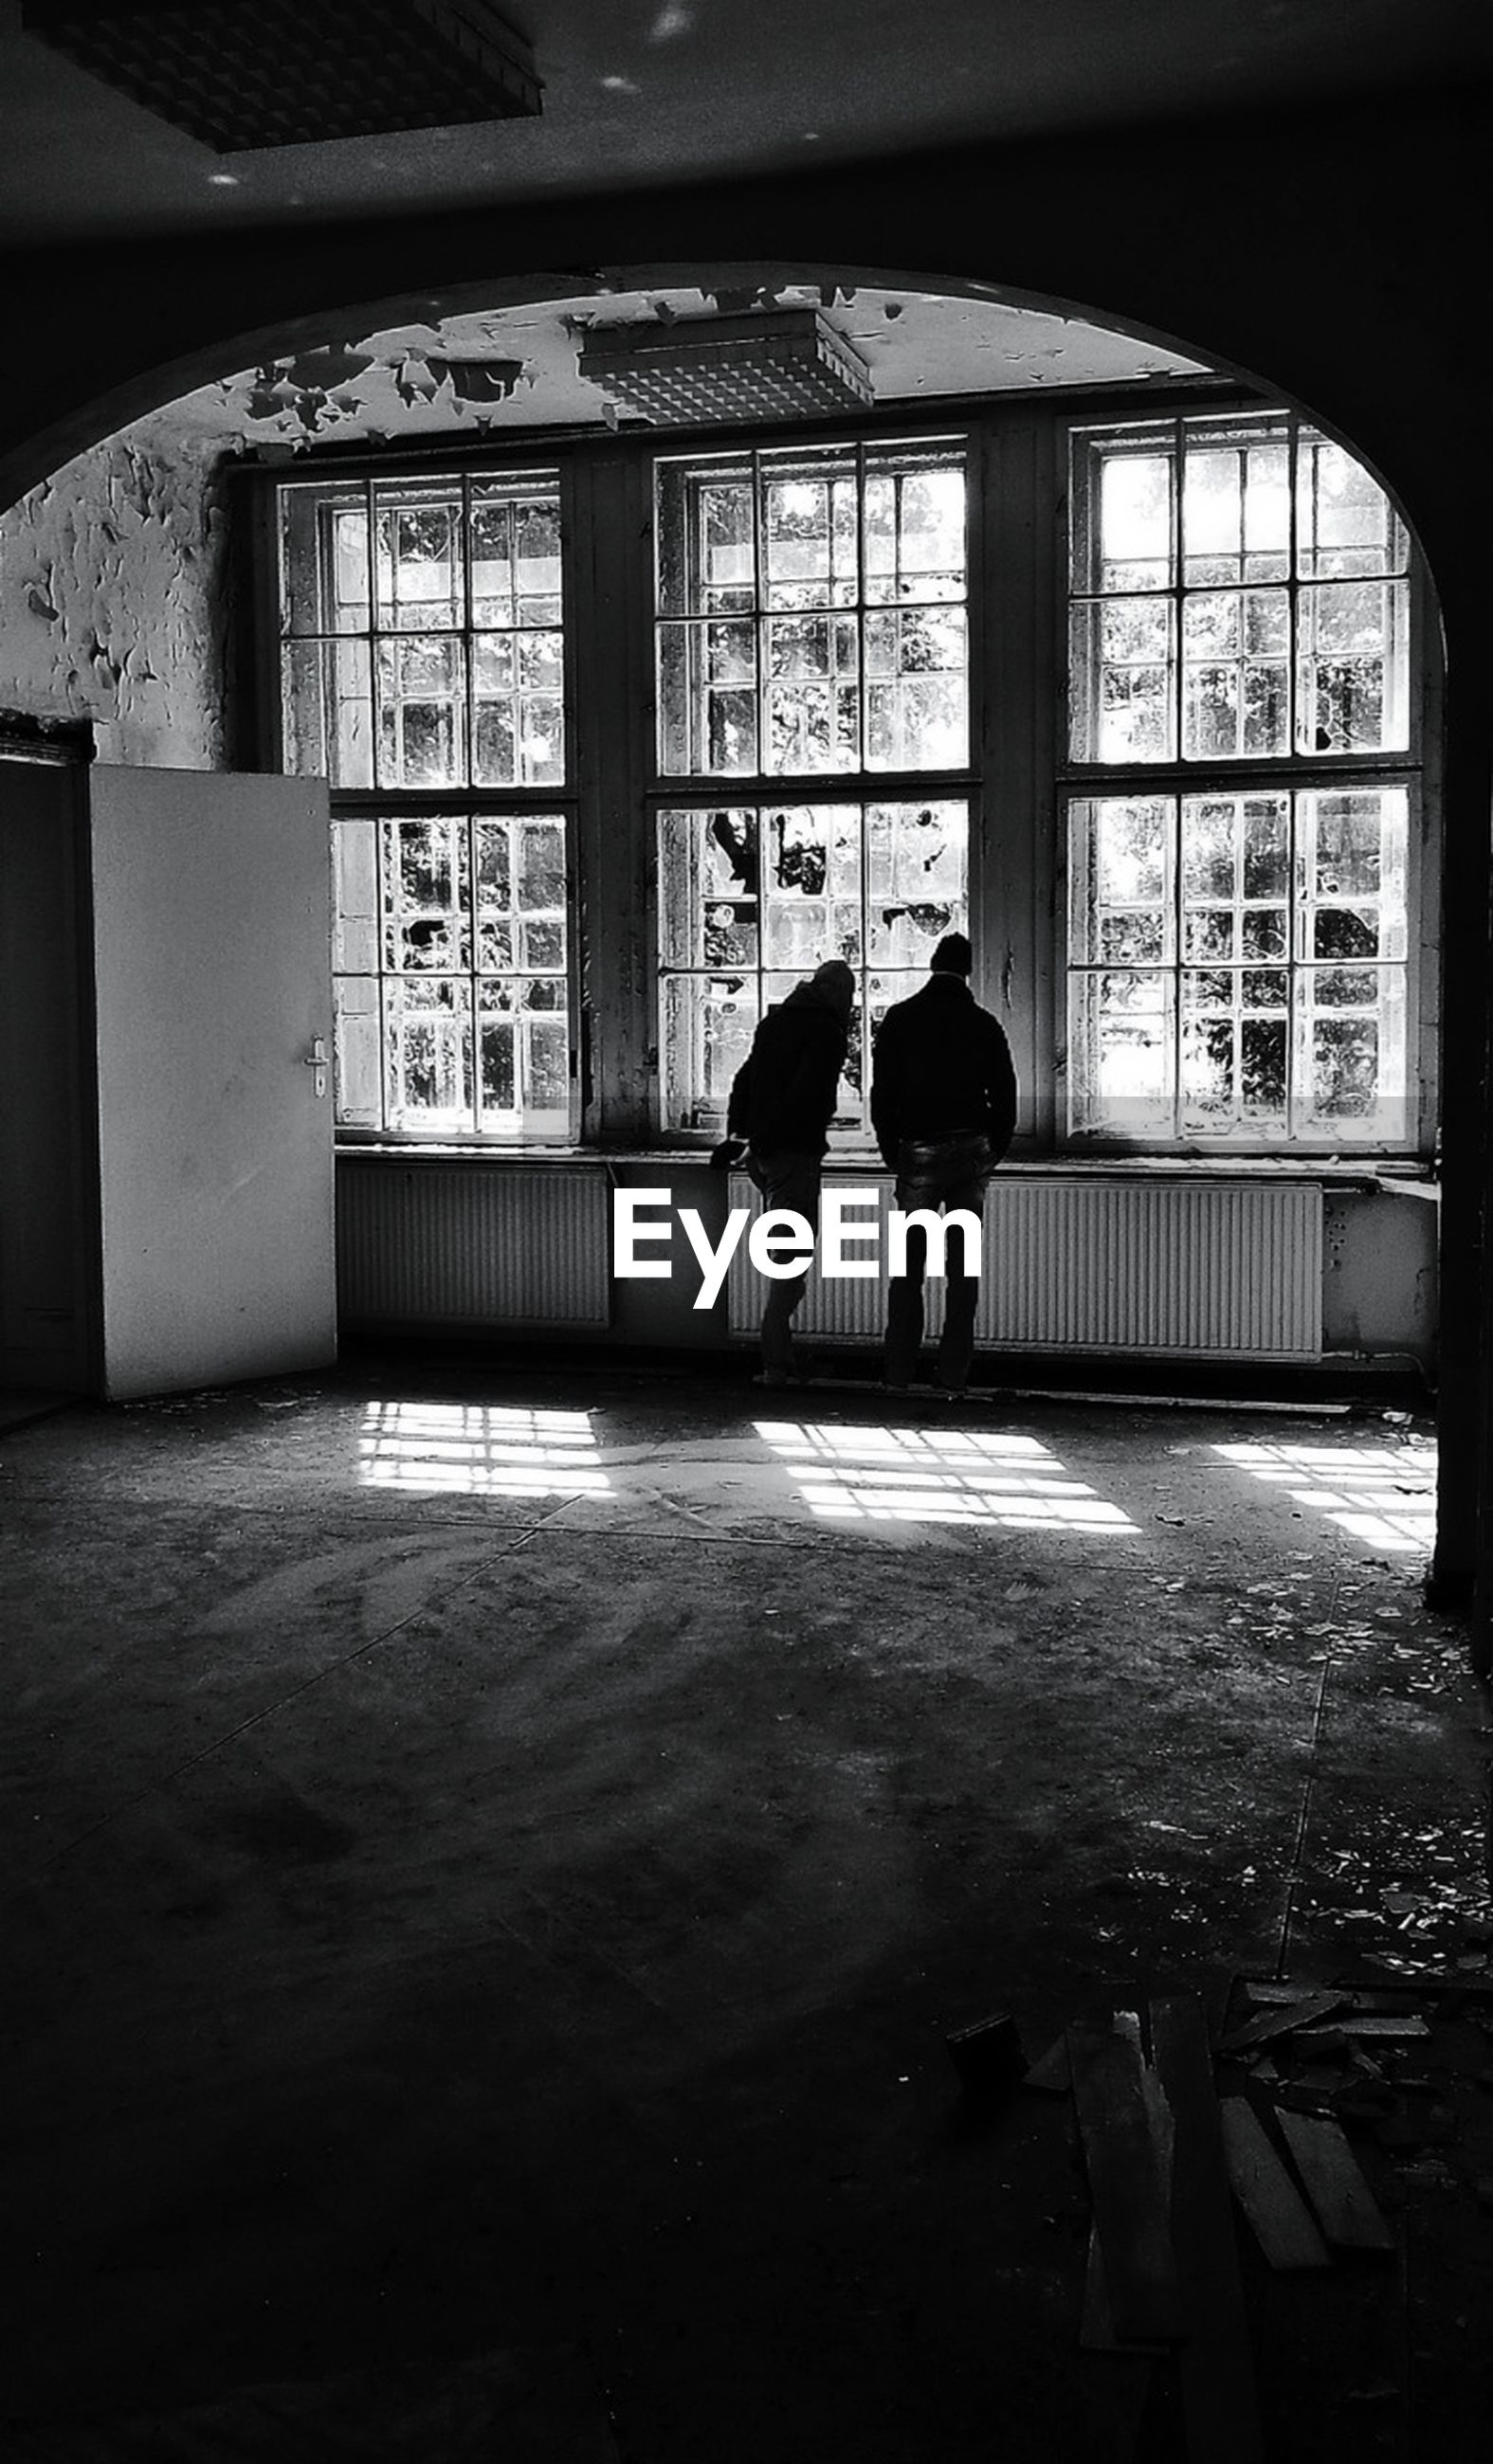 Rear view of two people in an empty room